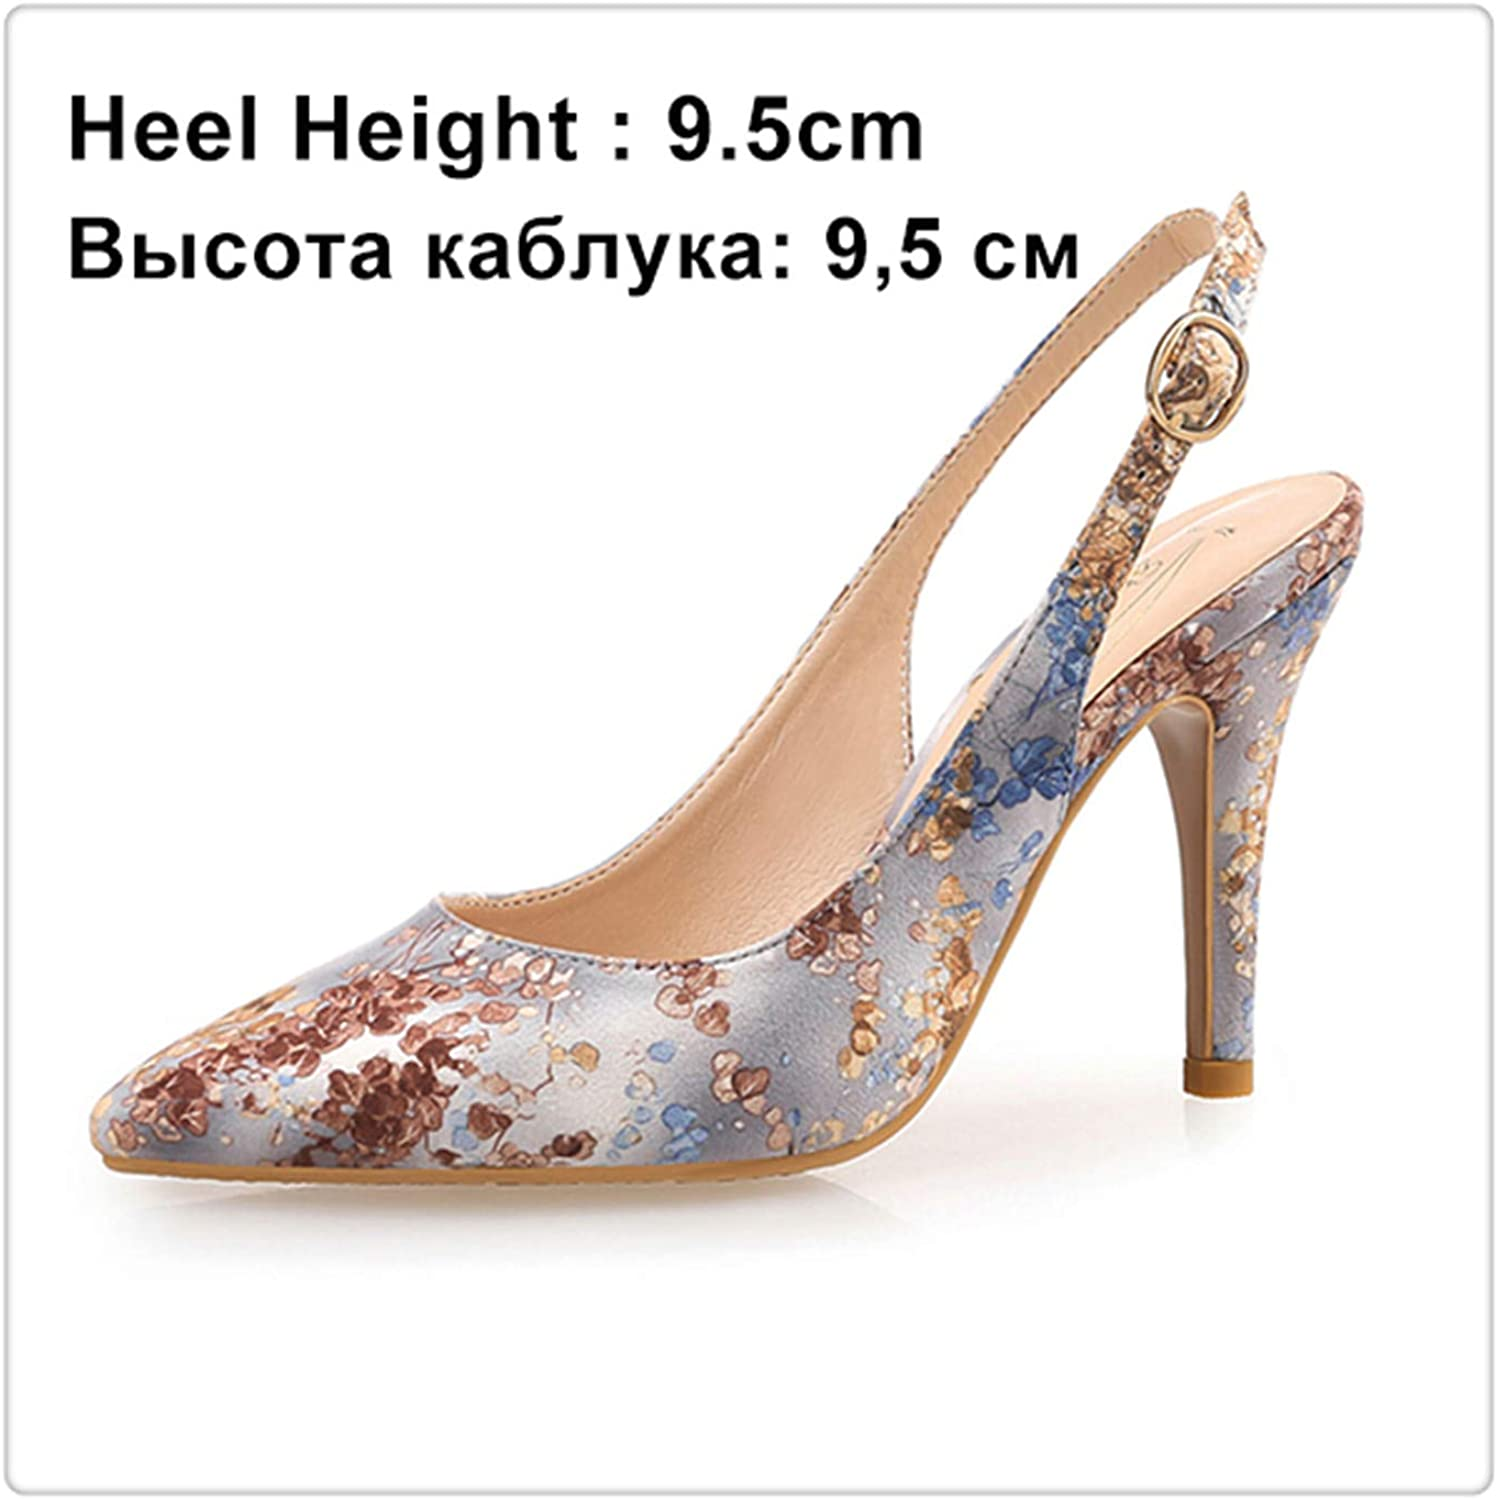 DOUSTY& Women Pumps High Heels shoes Female Brand Butterfly-Knot Wedding shoes Thin Heel Embroidered Cloth Party Ladies shoes Plus Size bluee 9.5cm 9